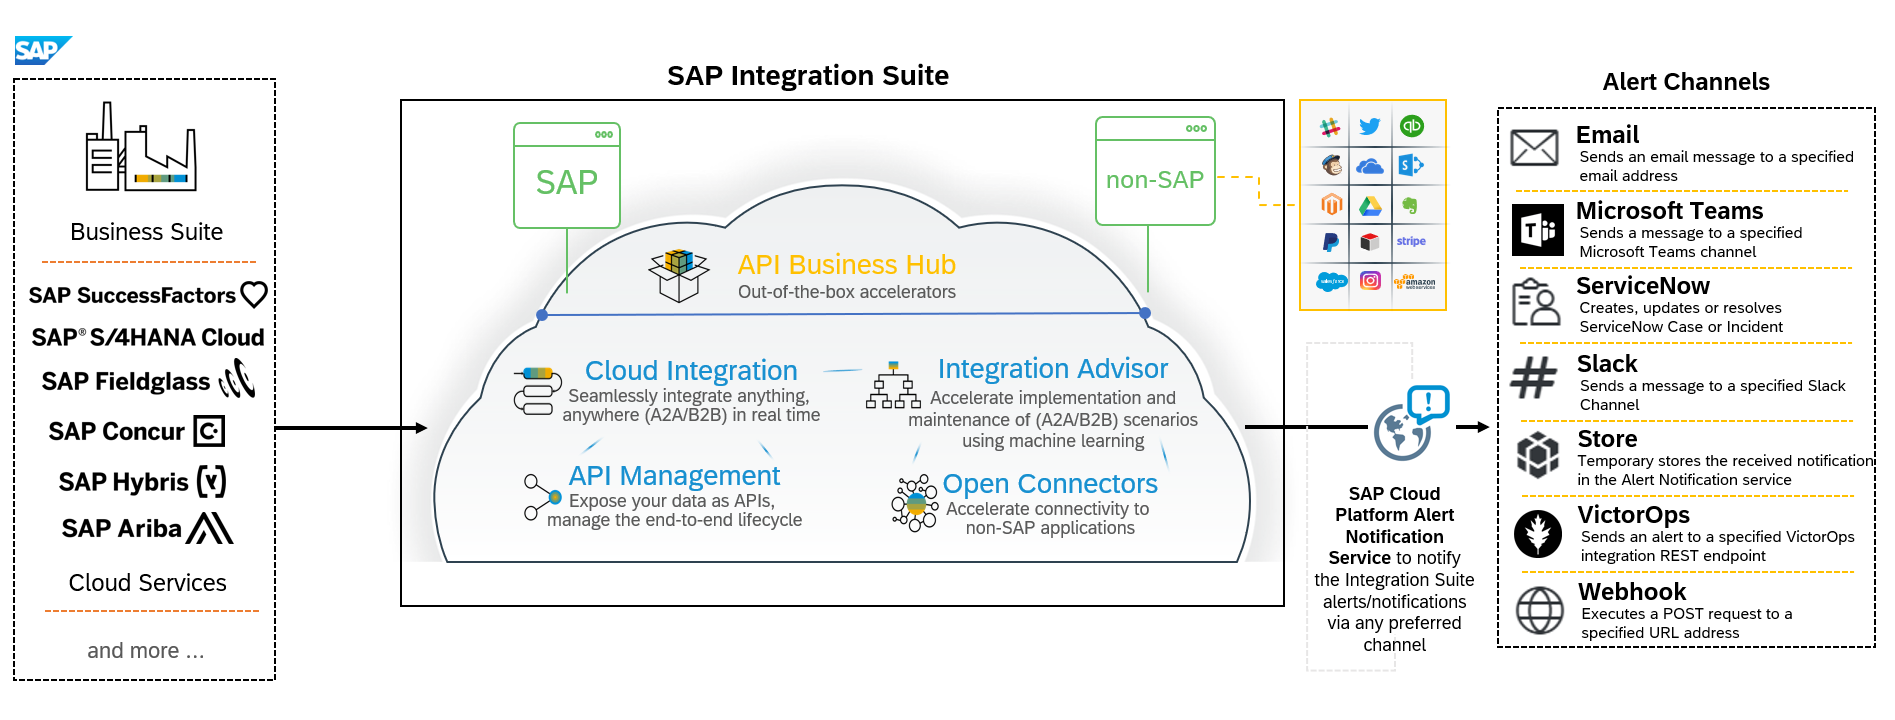 SAP%20Cloud%20Platform%20Integration%20Suite